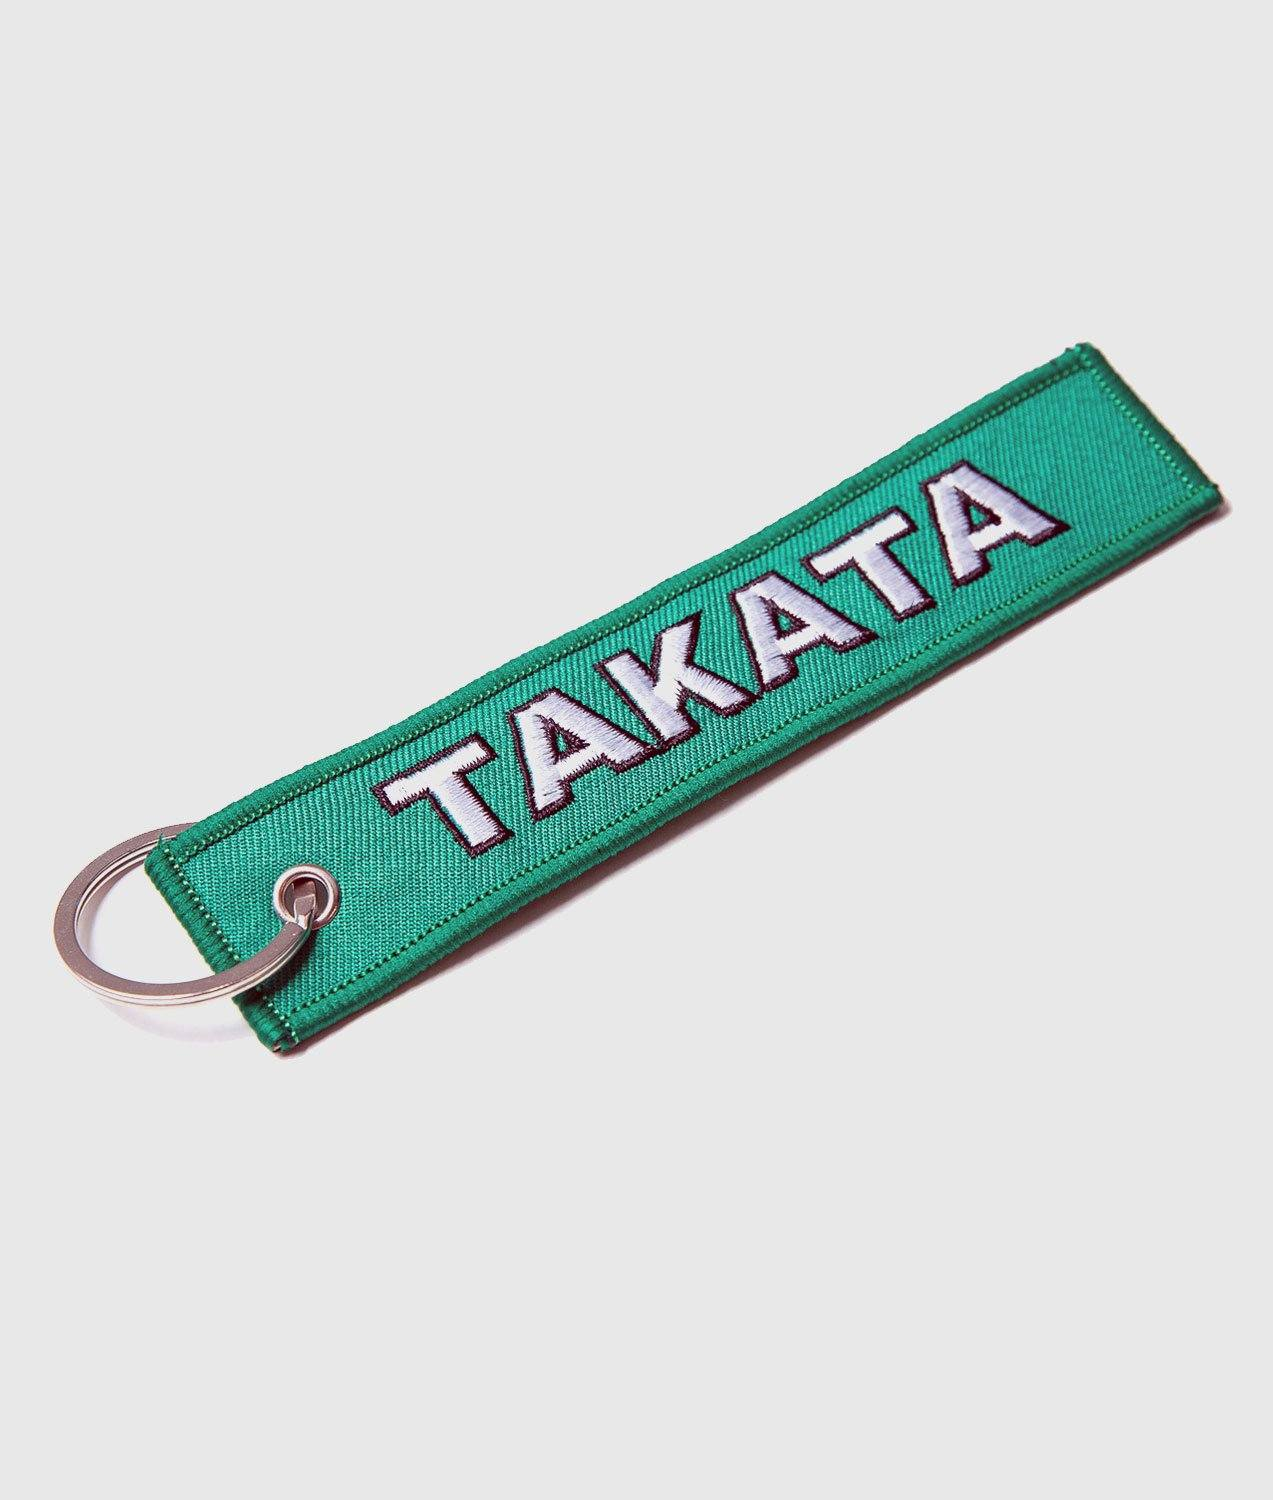 Takata Key Tag